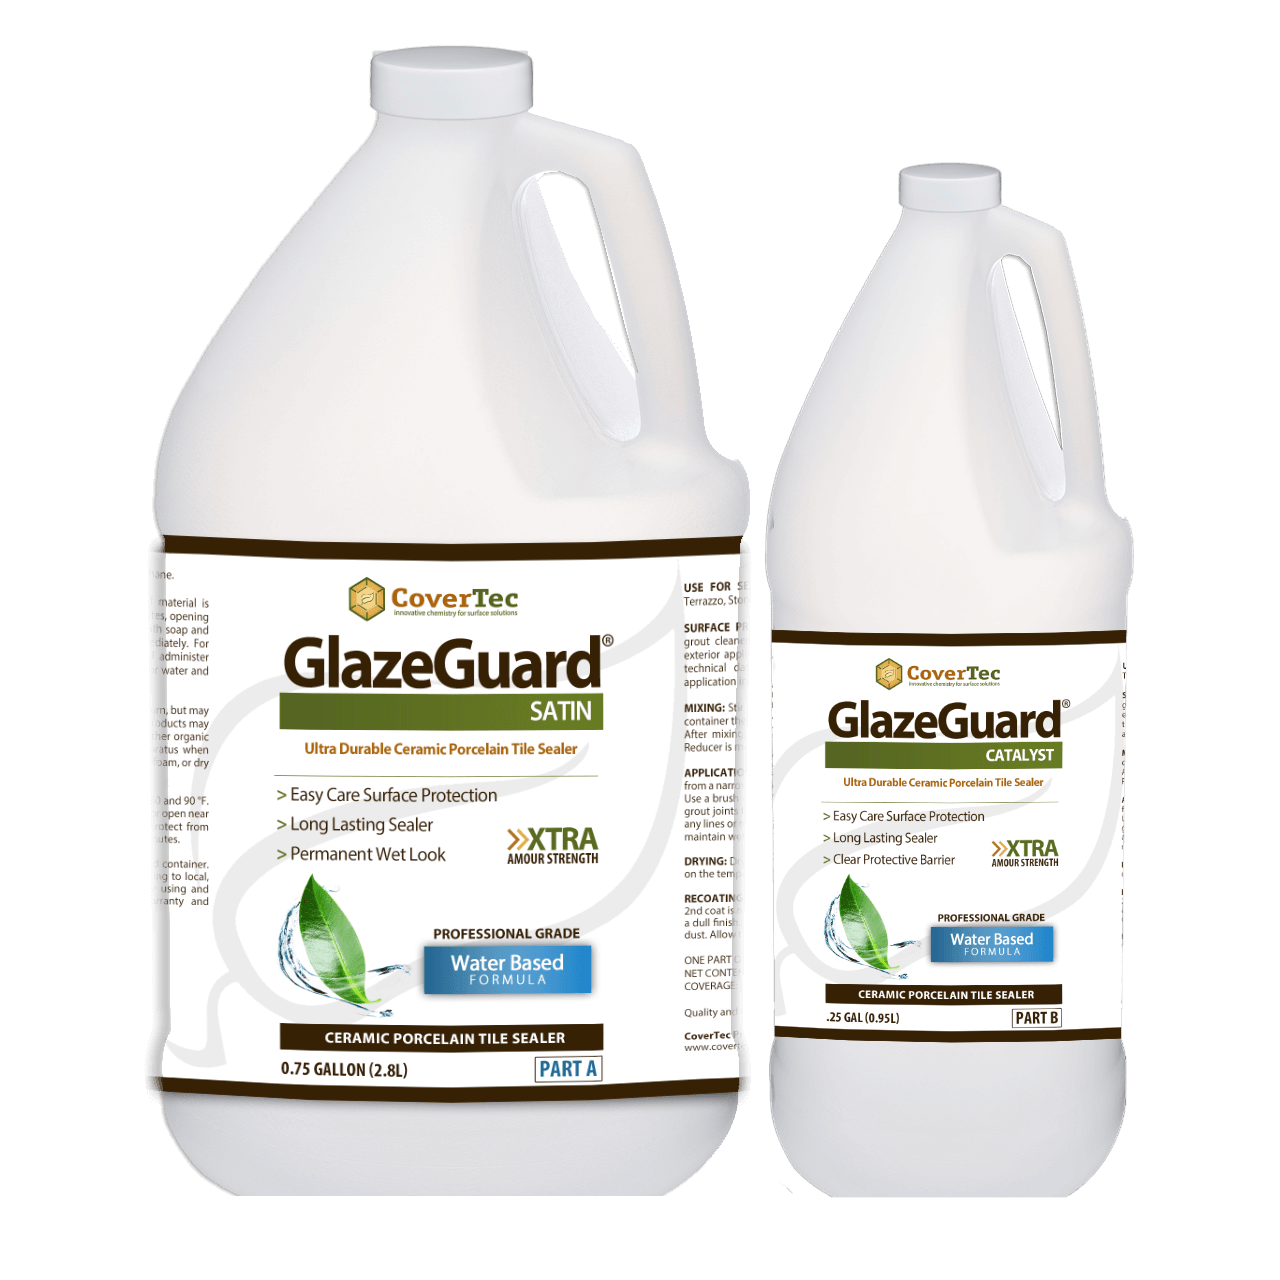 Glazeguard Satin Finish Glazed Porcelain Tile Sealer